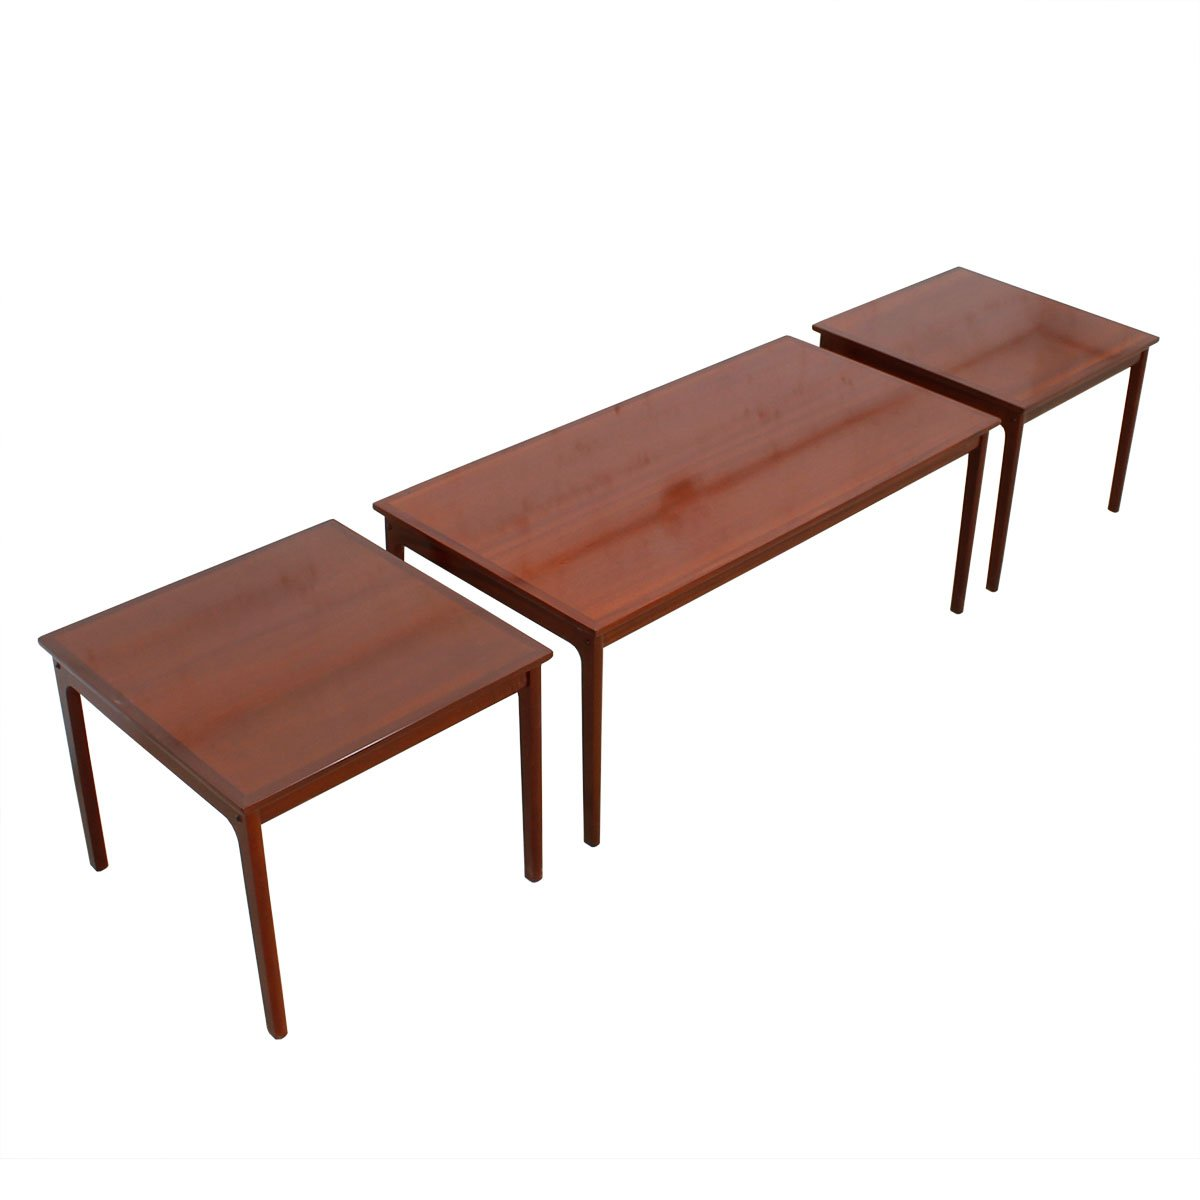 Danish Modern Rosewood Coffee Table & Pair of End Tables by Ole Wanscher